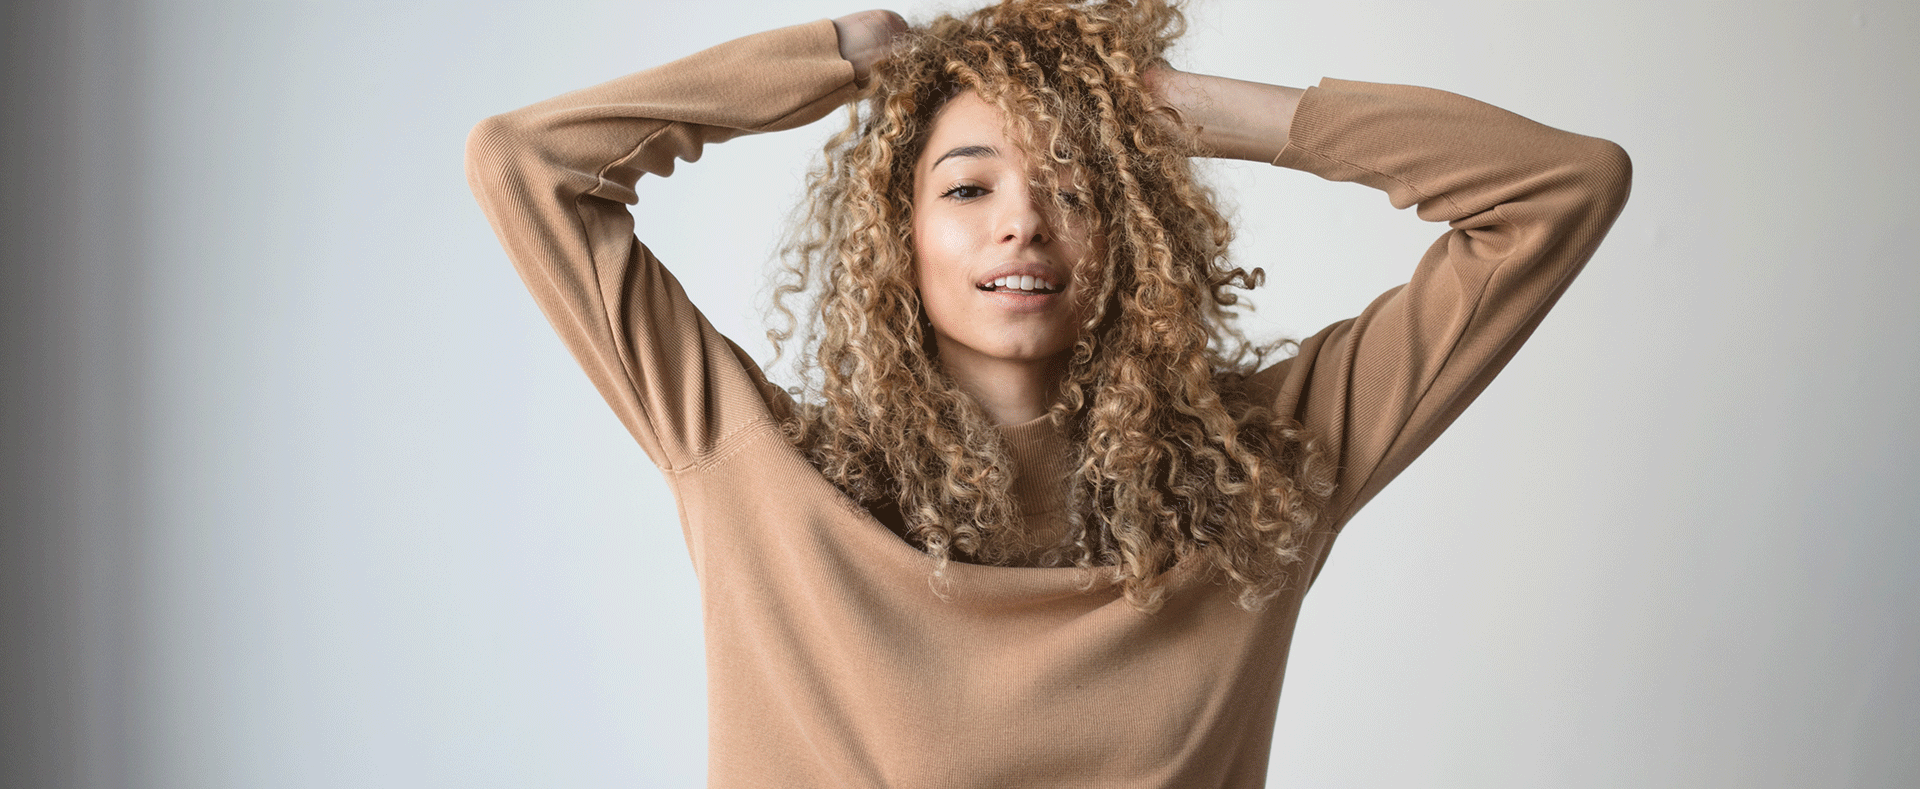 Woman in a brown sweater with curly blonde/brown hair.